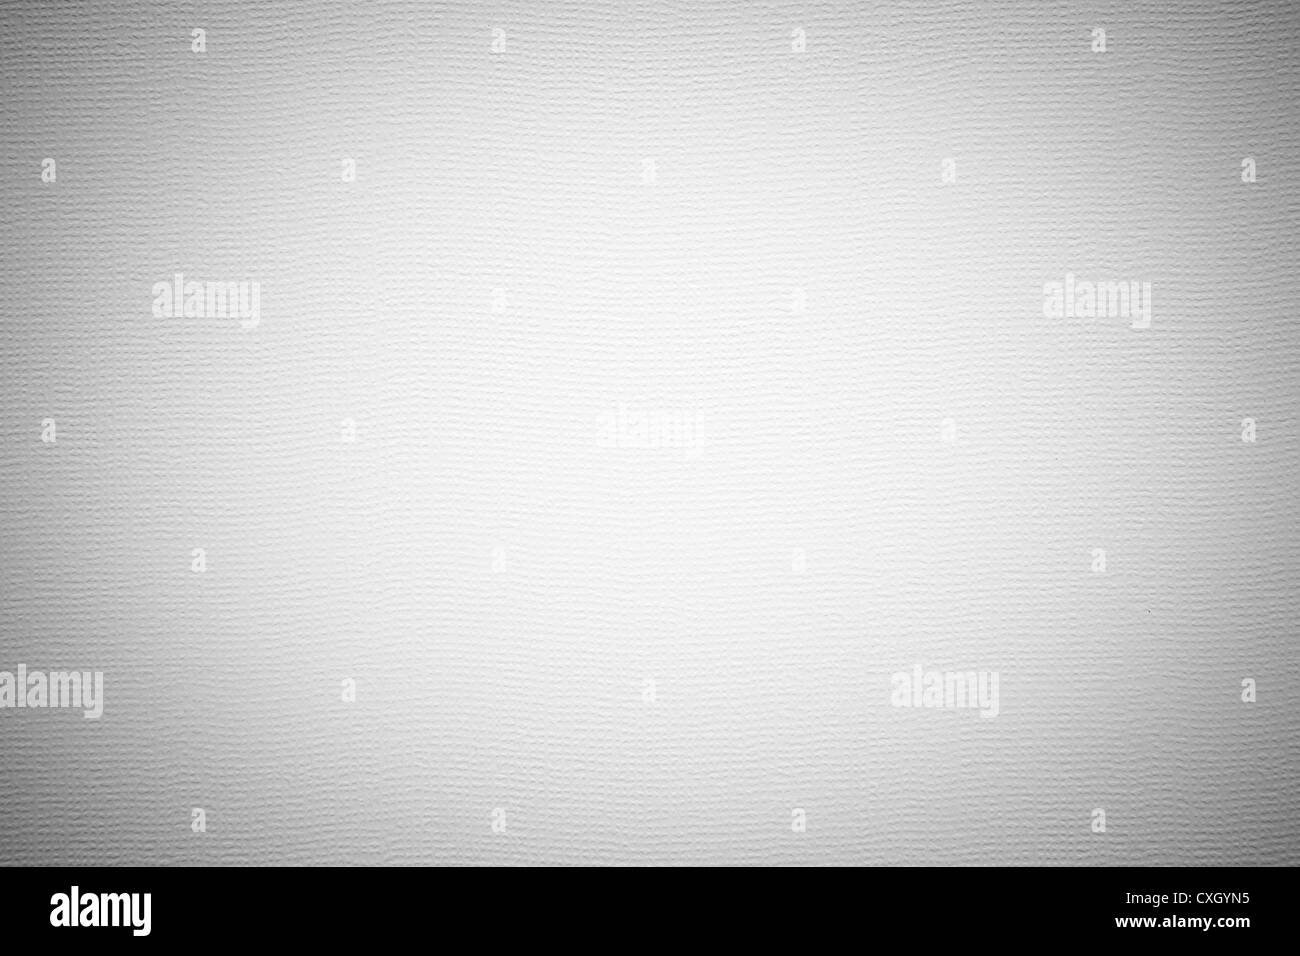 White paper texture or background. - Stock Image